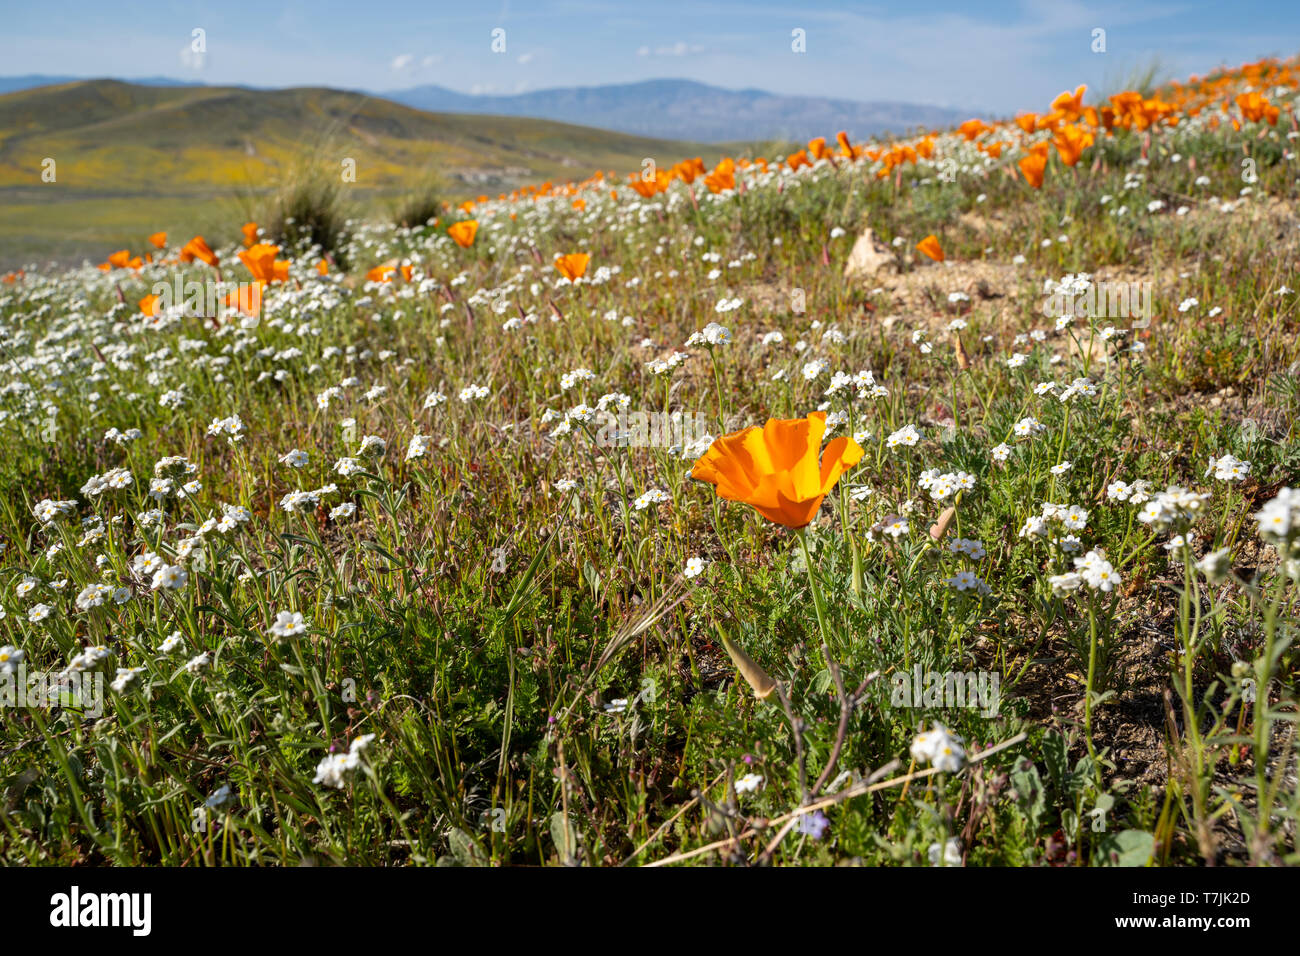 Poppies and white flowers in California during the superbloom spring - Stock Image